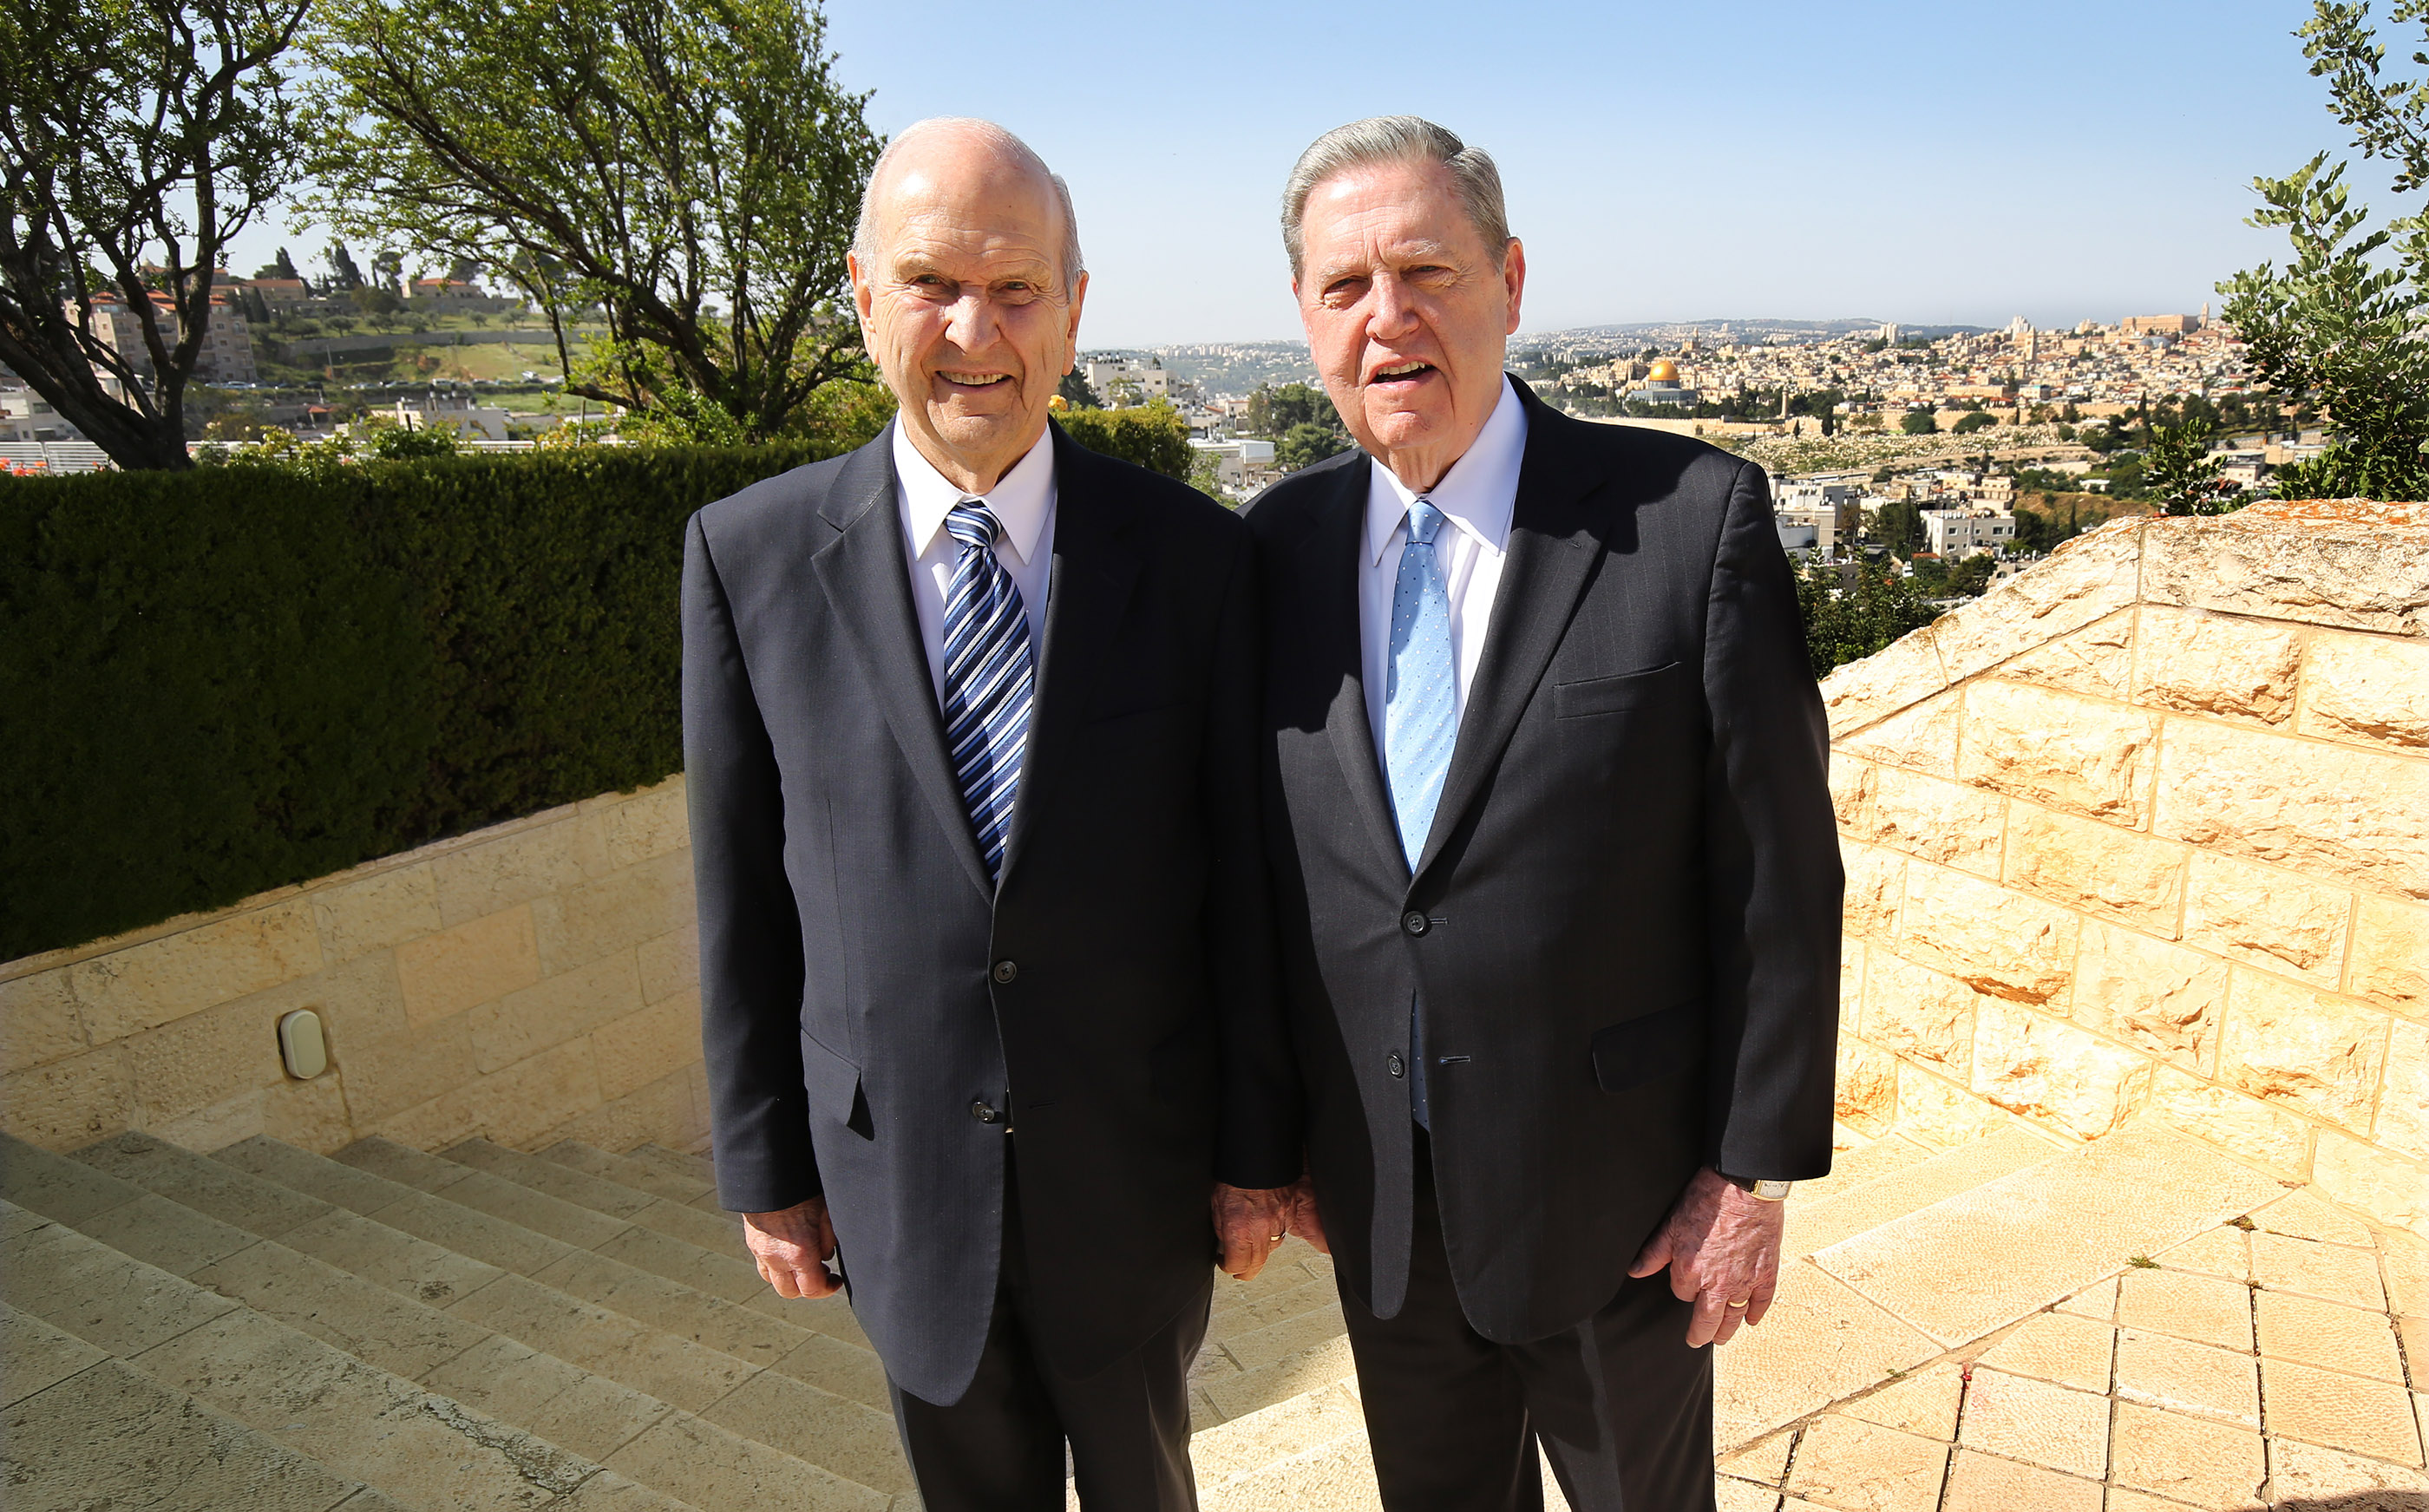 President Russell M. Nelson, president of The Church of Jesus Christ of Latter-day Saints, and Elder Jeffrey R. Holland, of Quorum of the Twelve Apostles, stand together at the BYU Jerusalem Center in Jerusalem on Saturday, April 14, 2018. President Nelson and Elder Holland are on a global tour of eight countries.